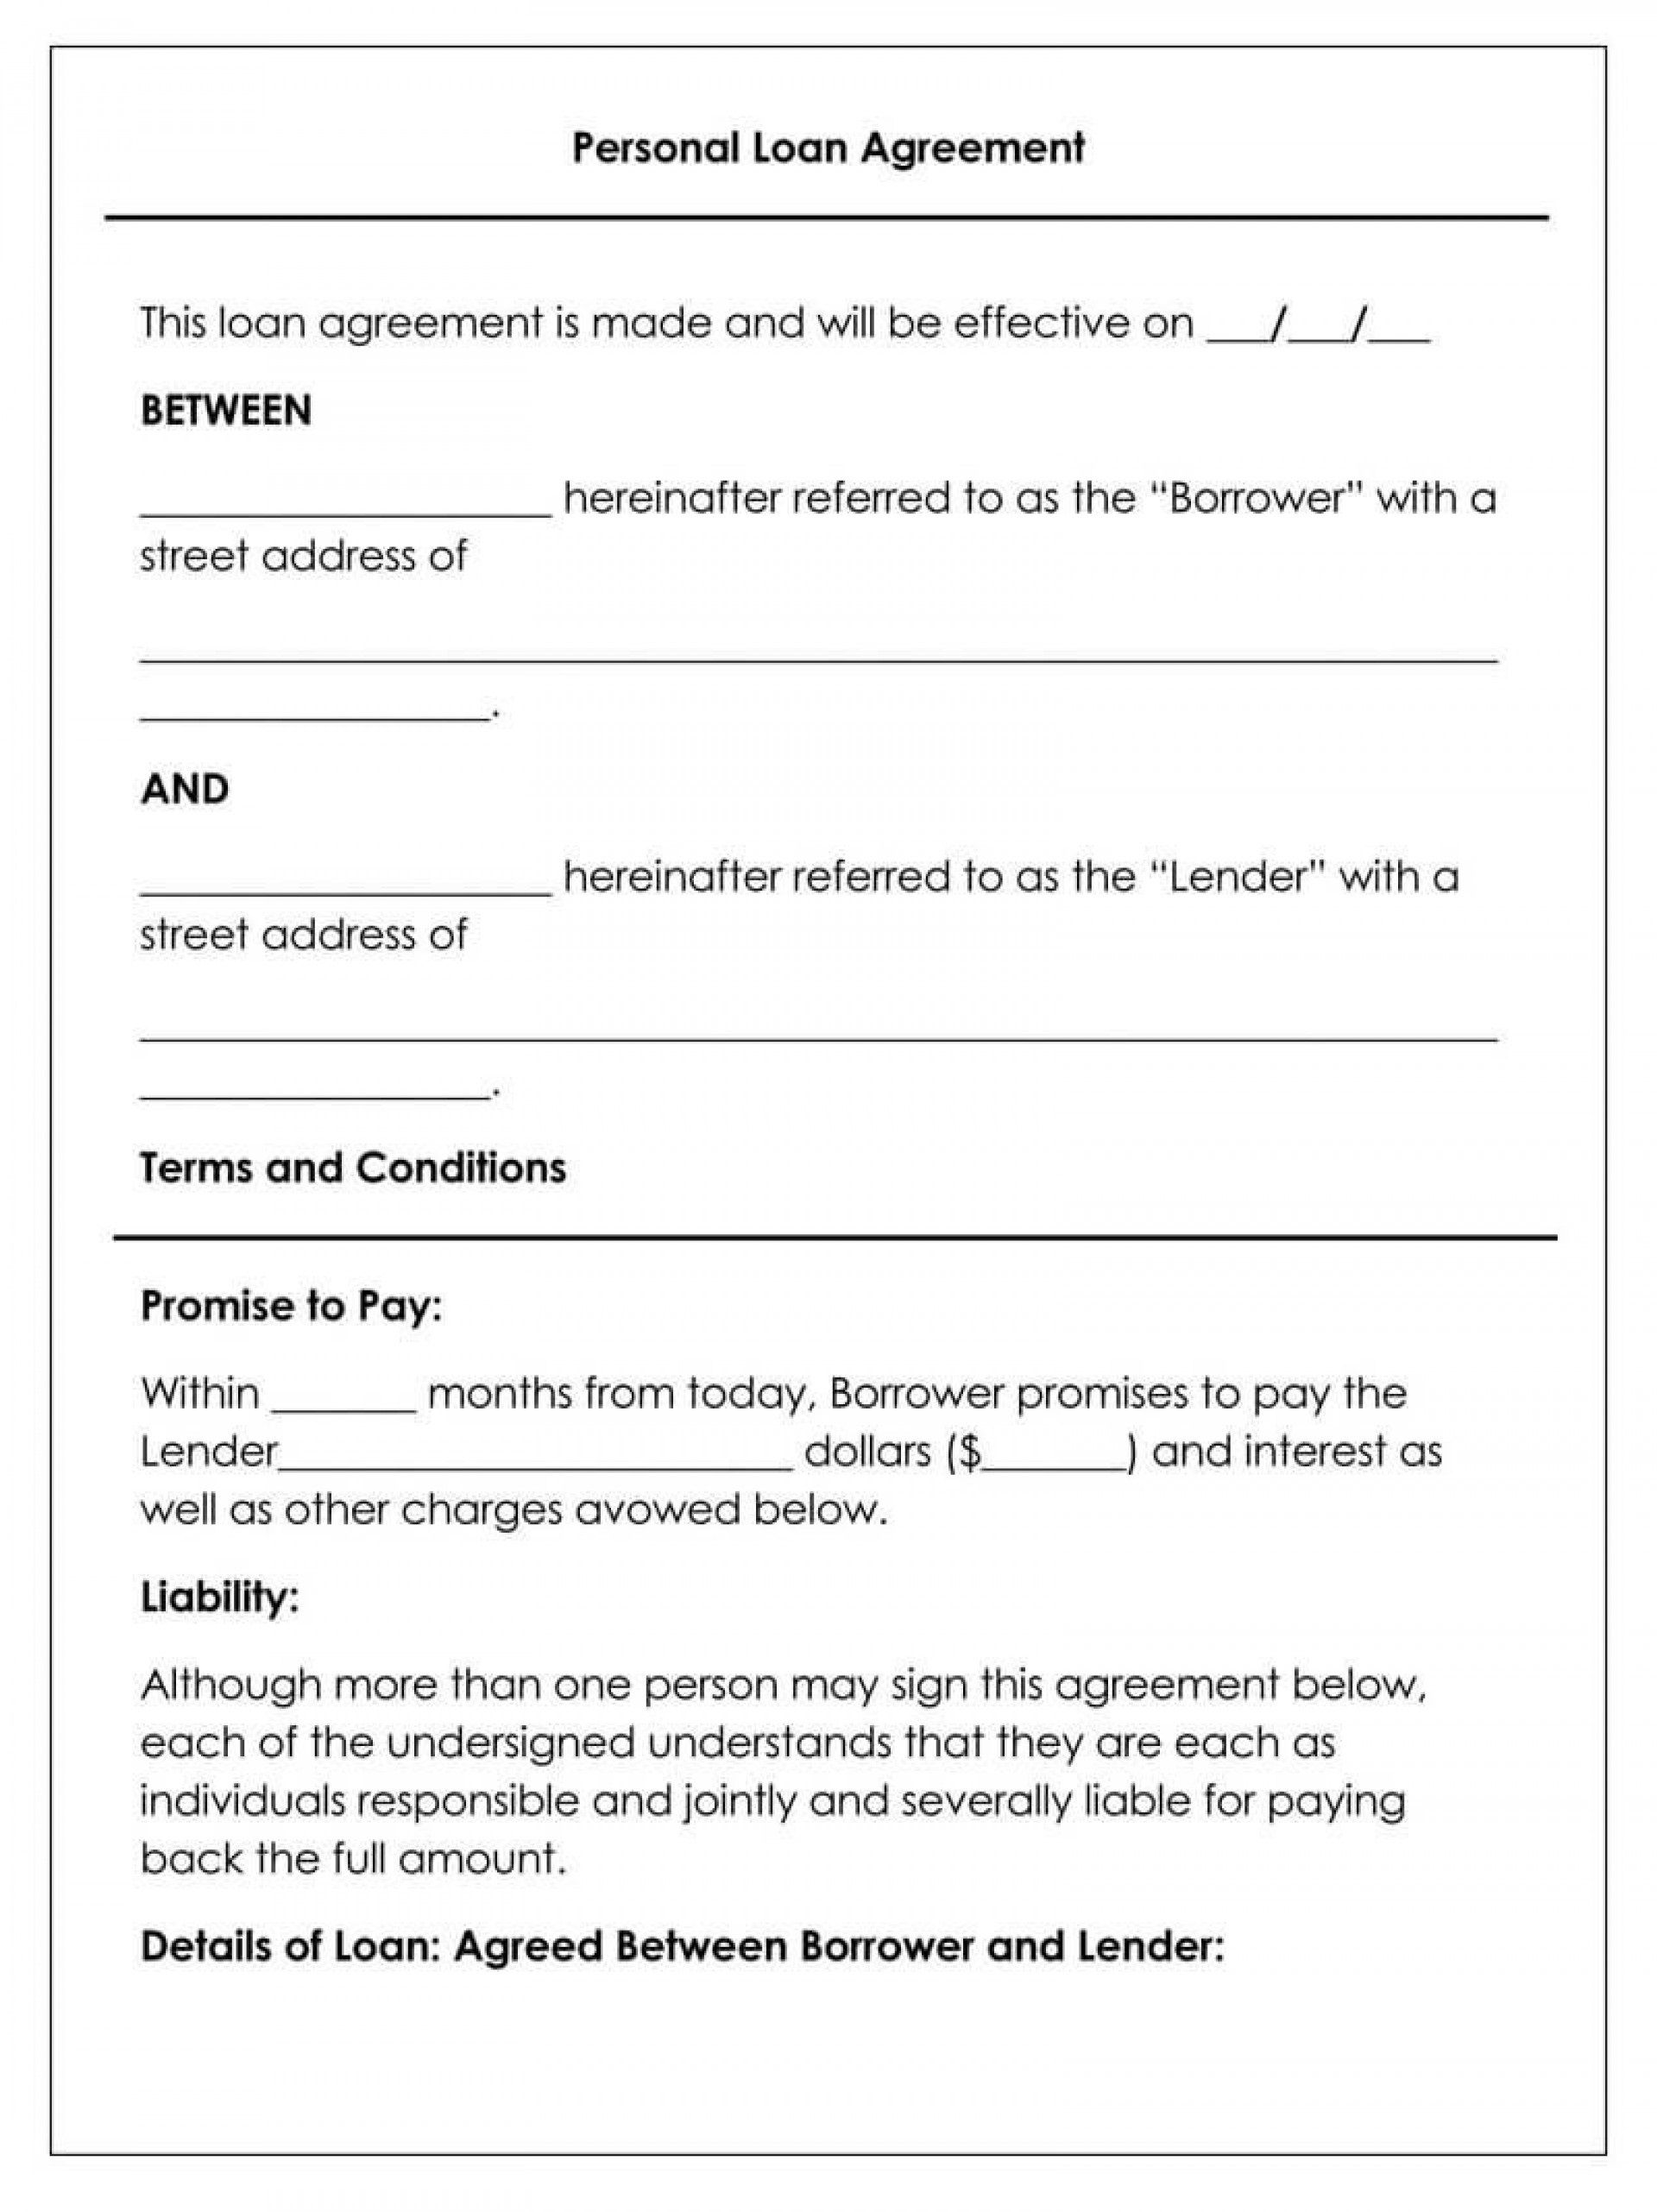 004 Amazing Simple Family Loan Agreement Template Australia Sample Full